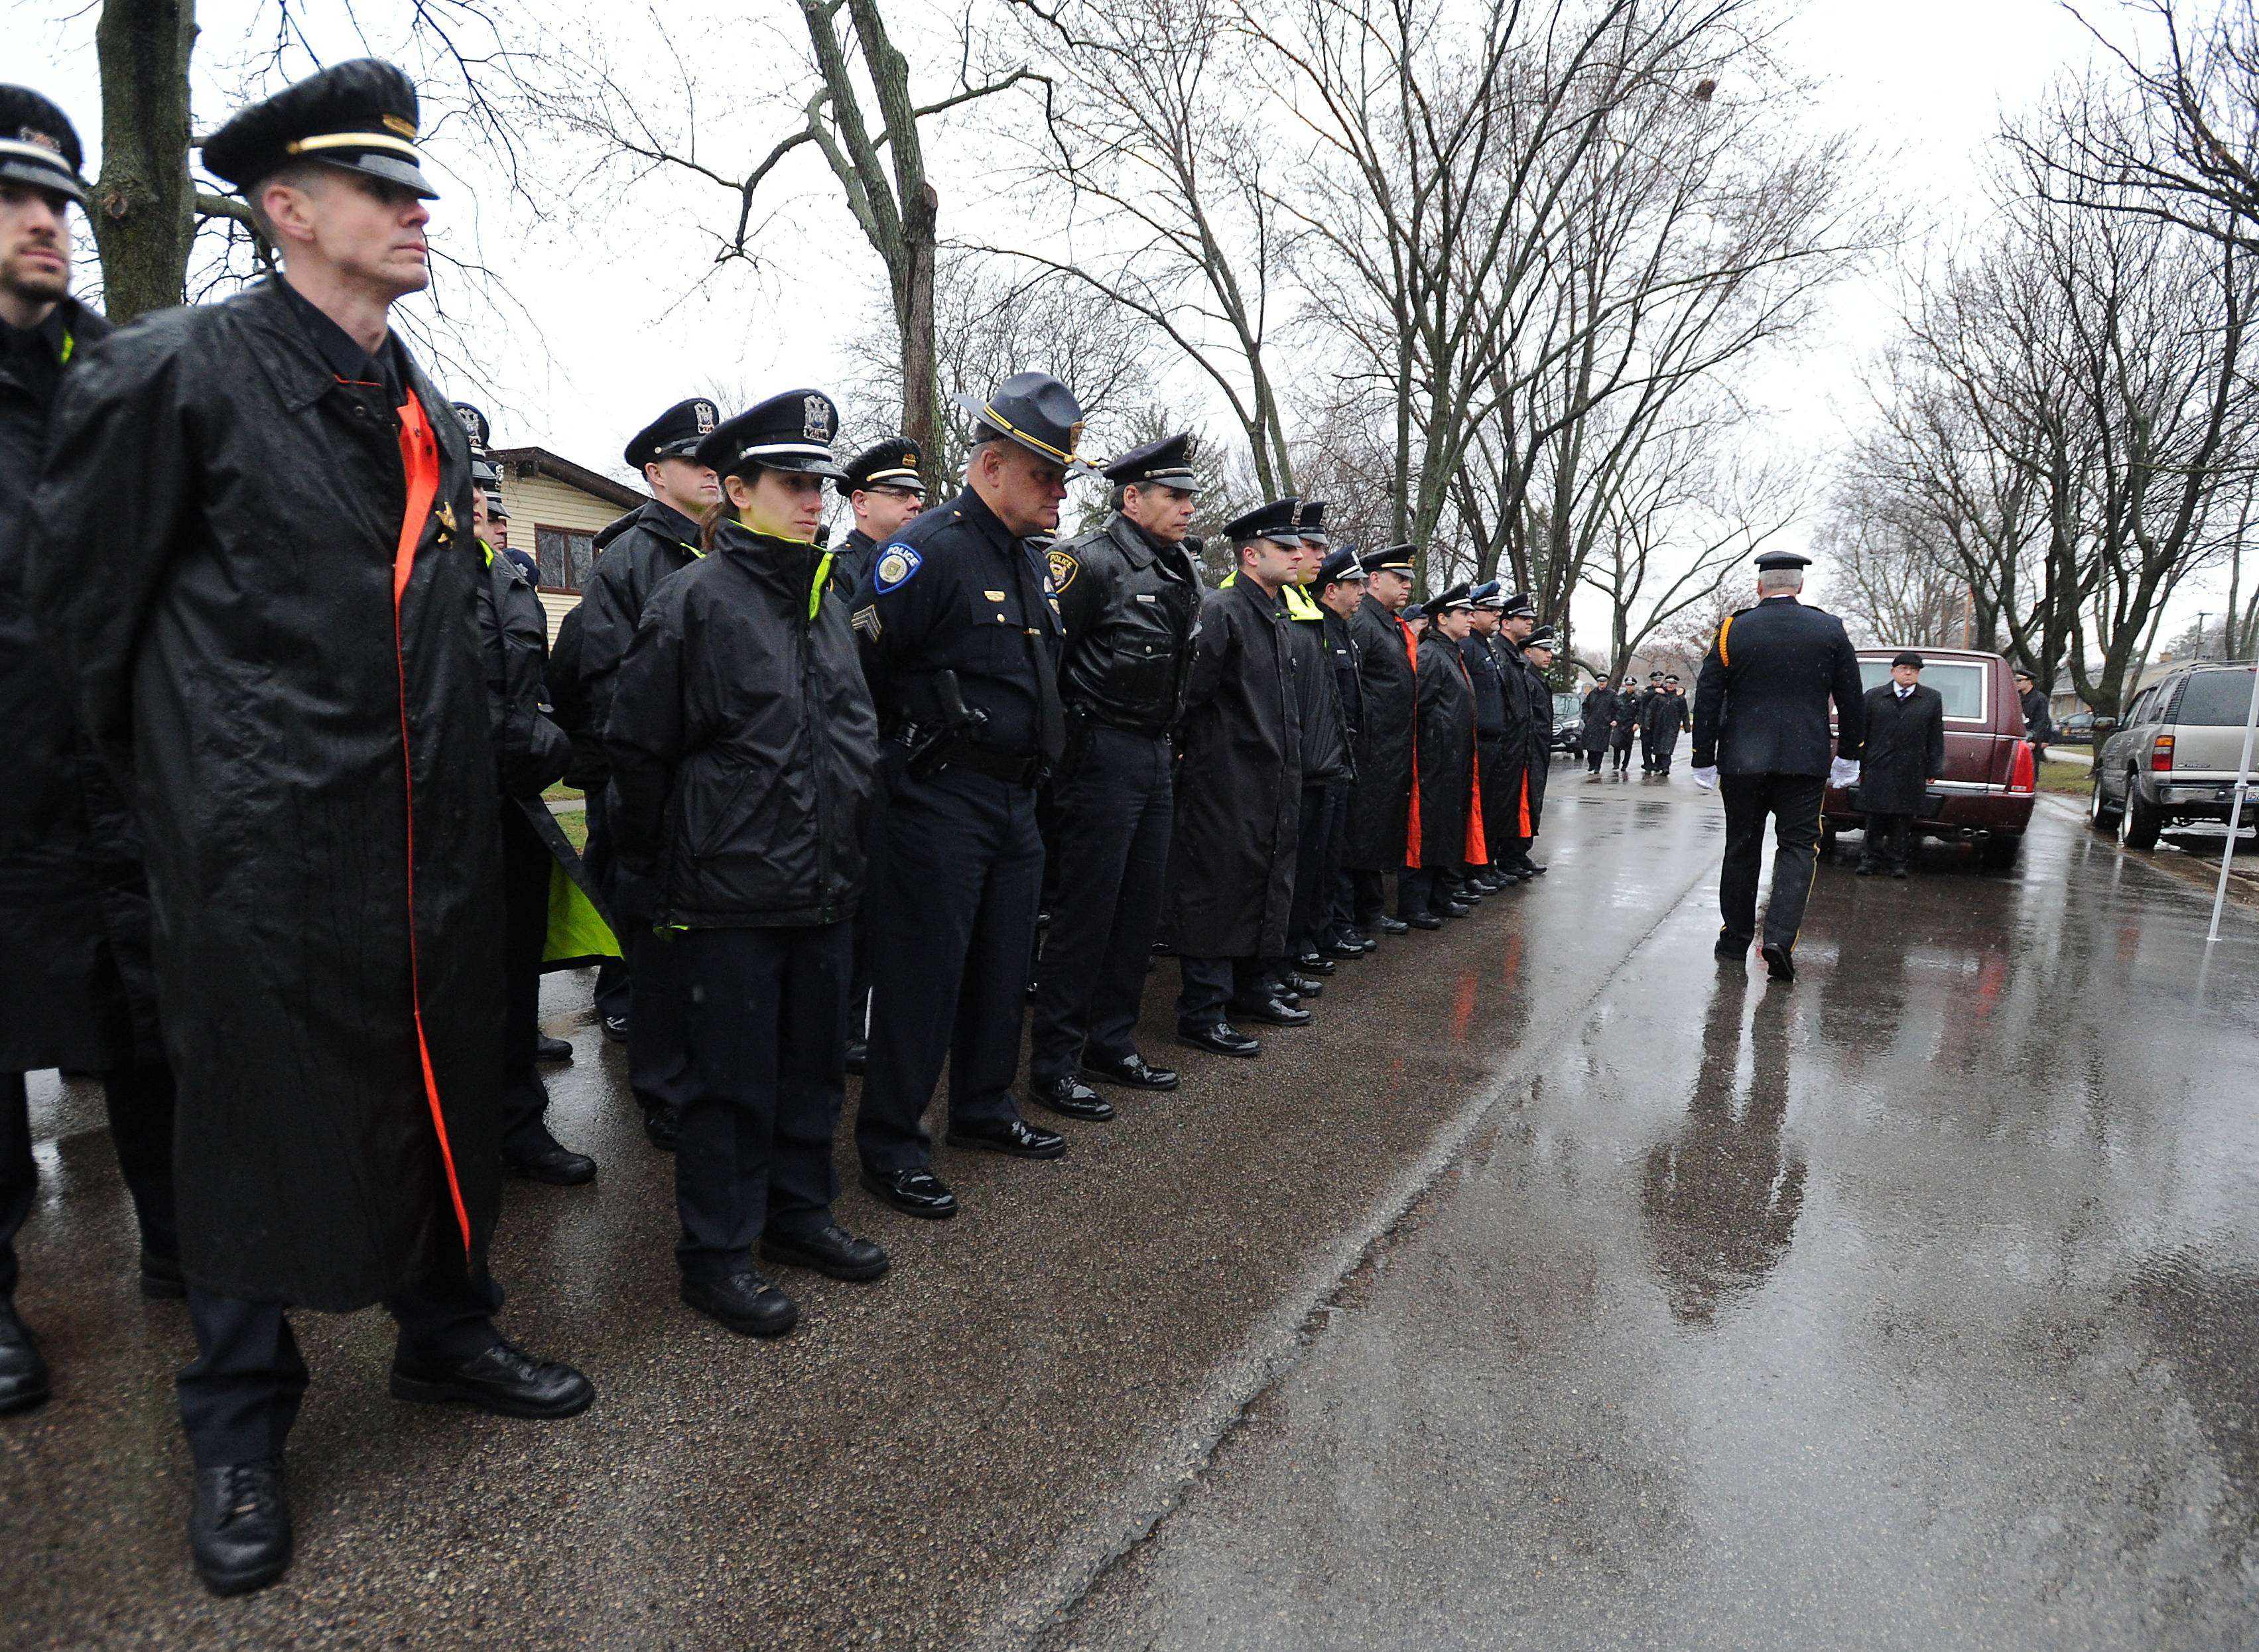 Mt. Prospect officer laid to rest amid emotional ceremonies